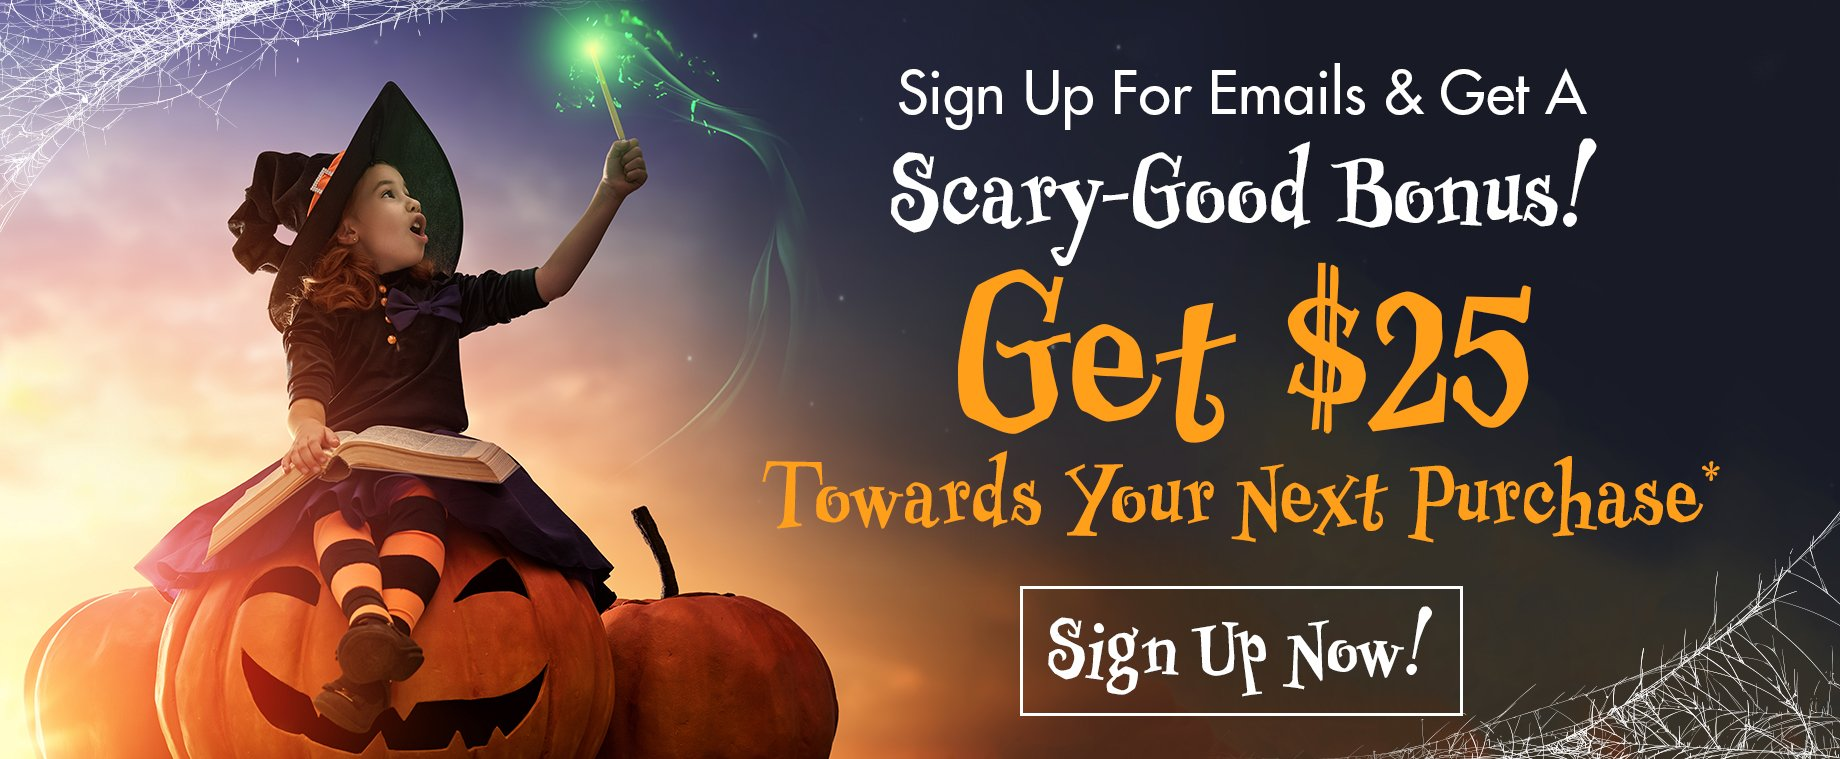 Sign Up for RC Willey Emails Get $25 | October 2019 Email Sign Up Promotion | RC Willey